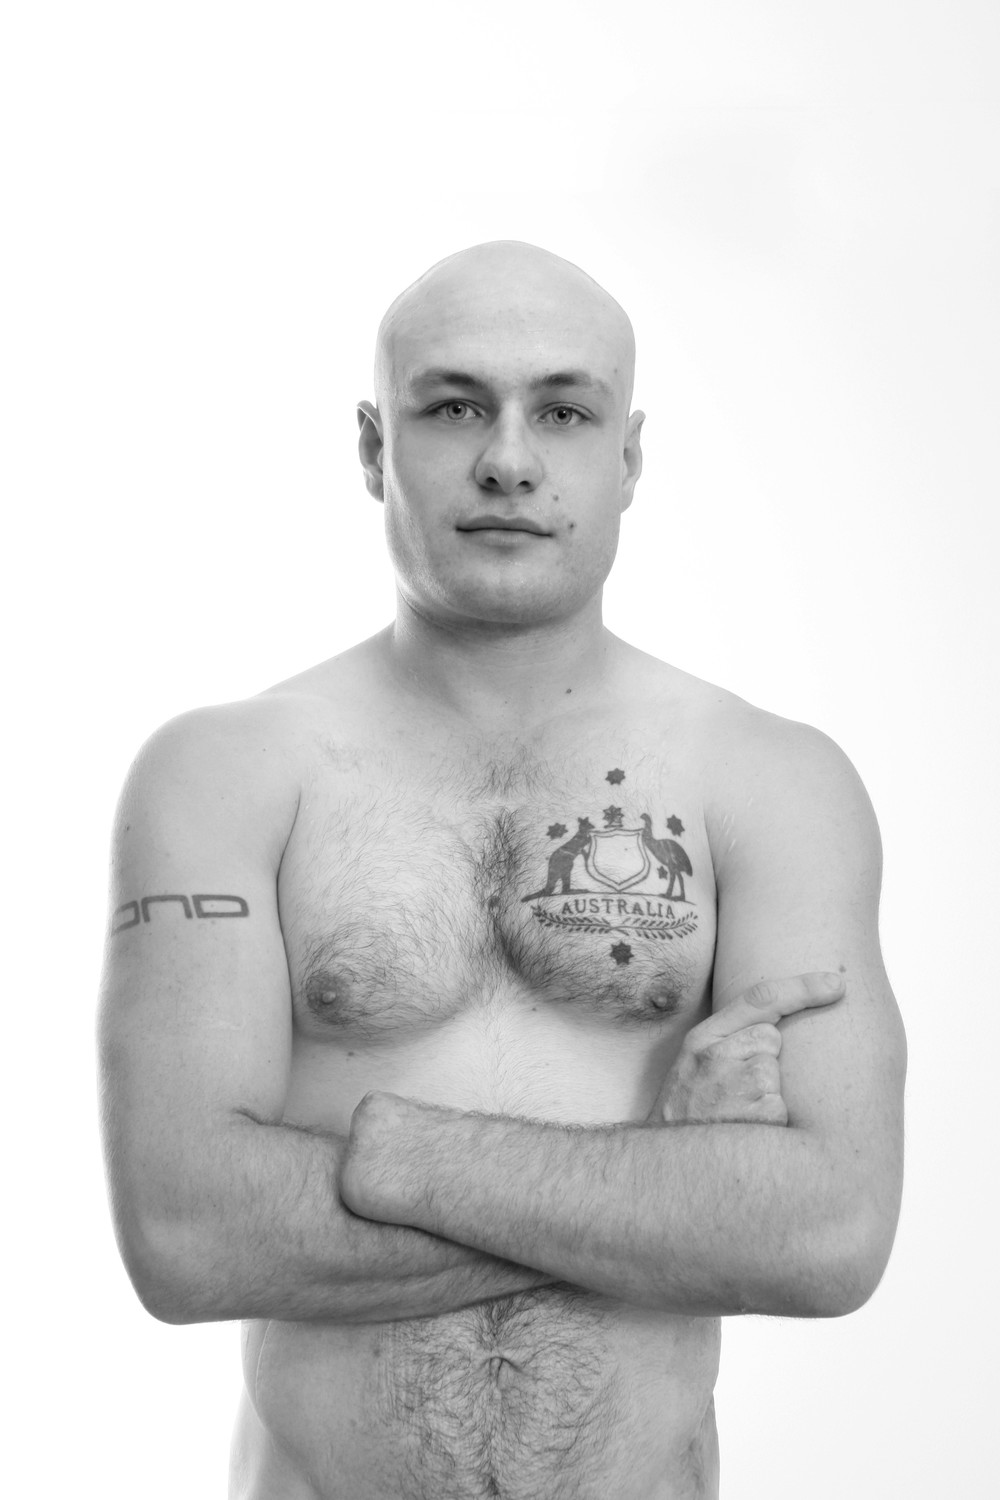 Chris, Leukaemia survivor by Lisa Auger